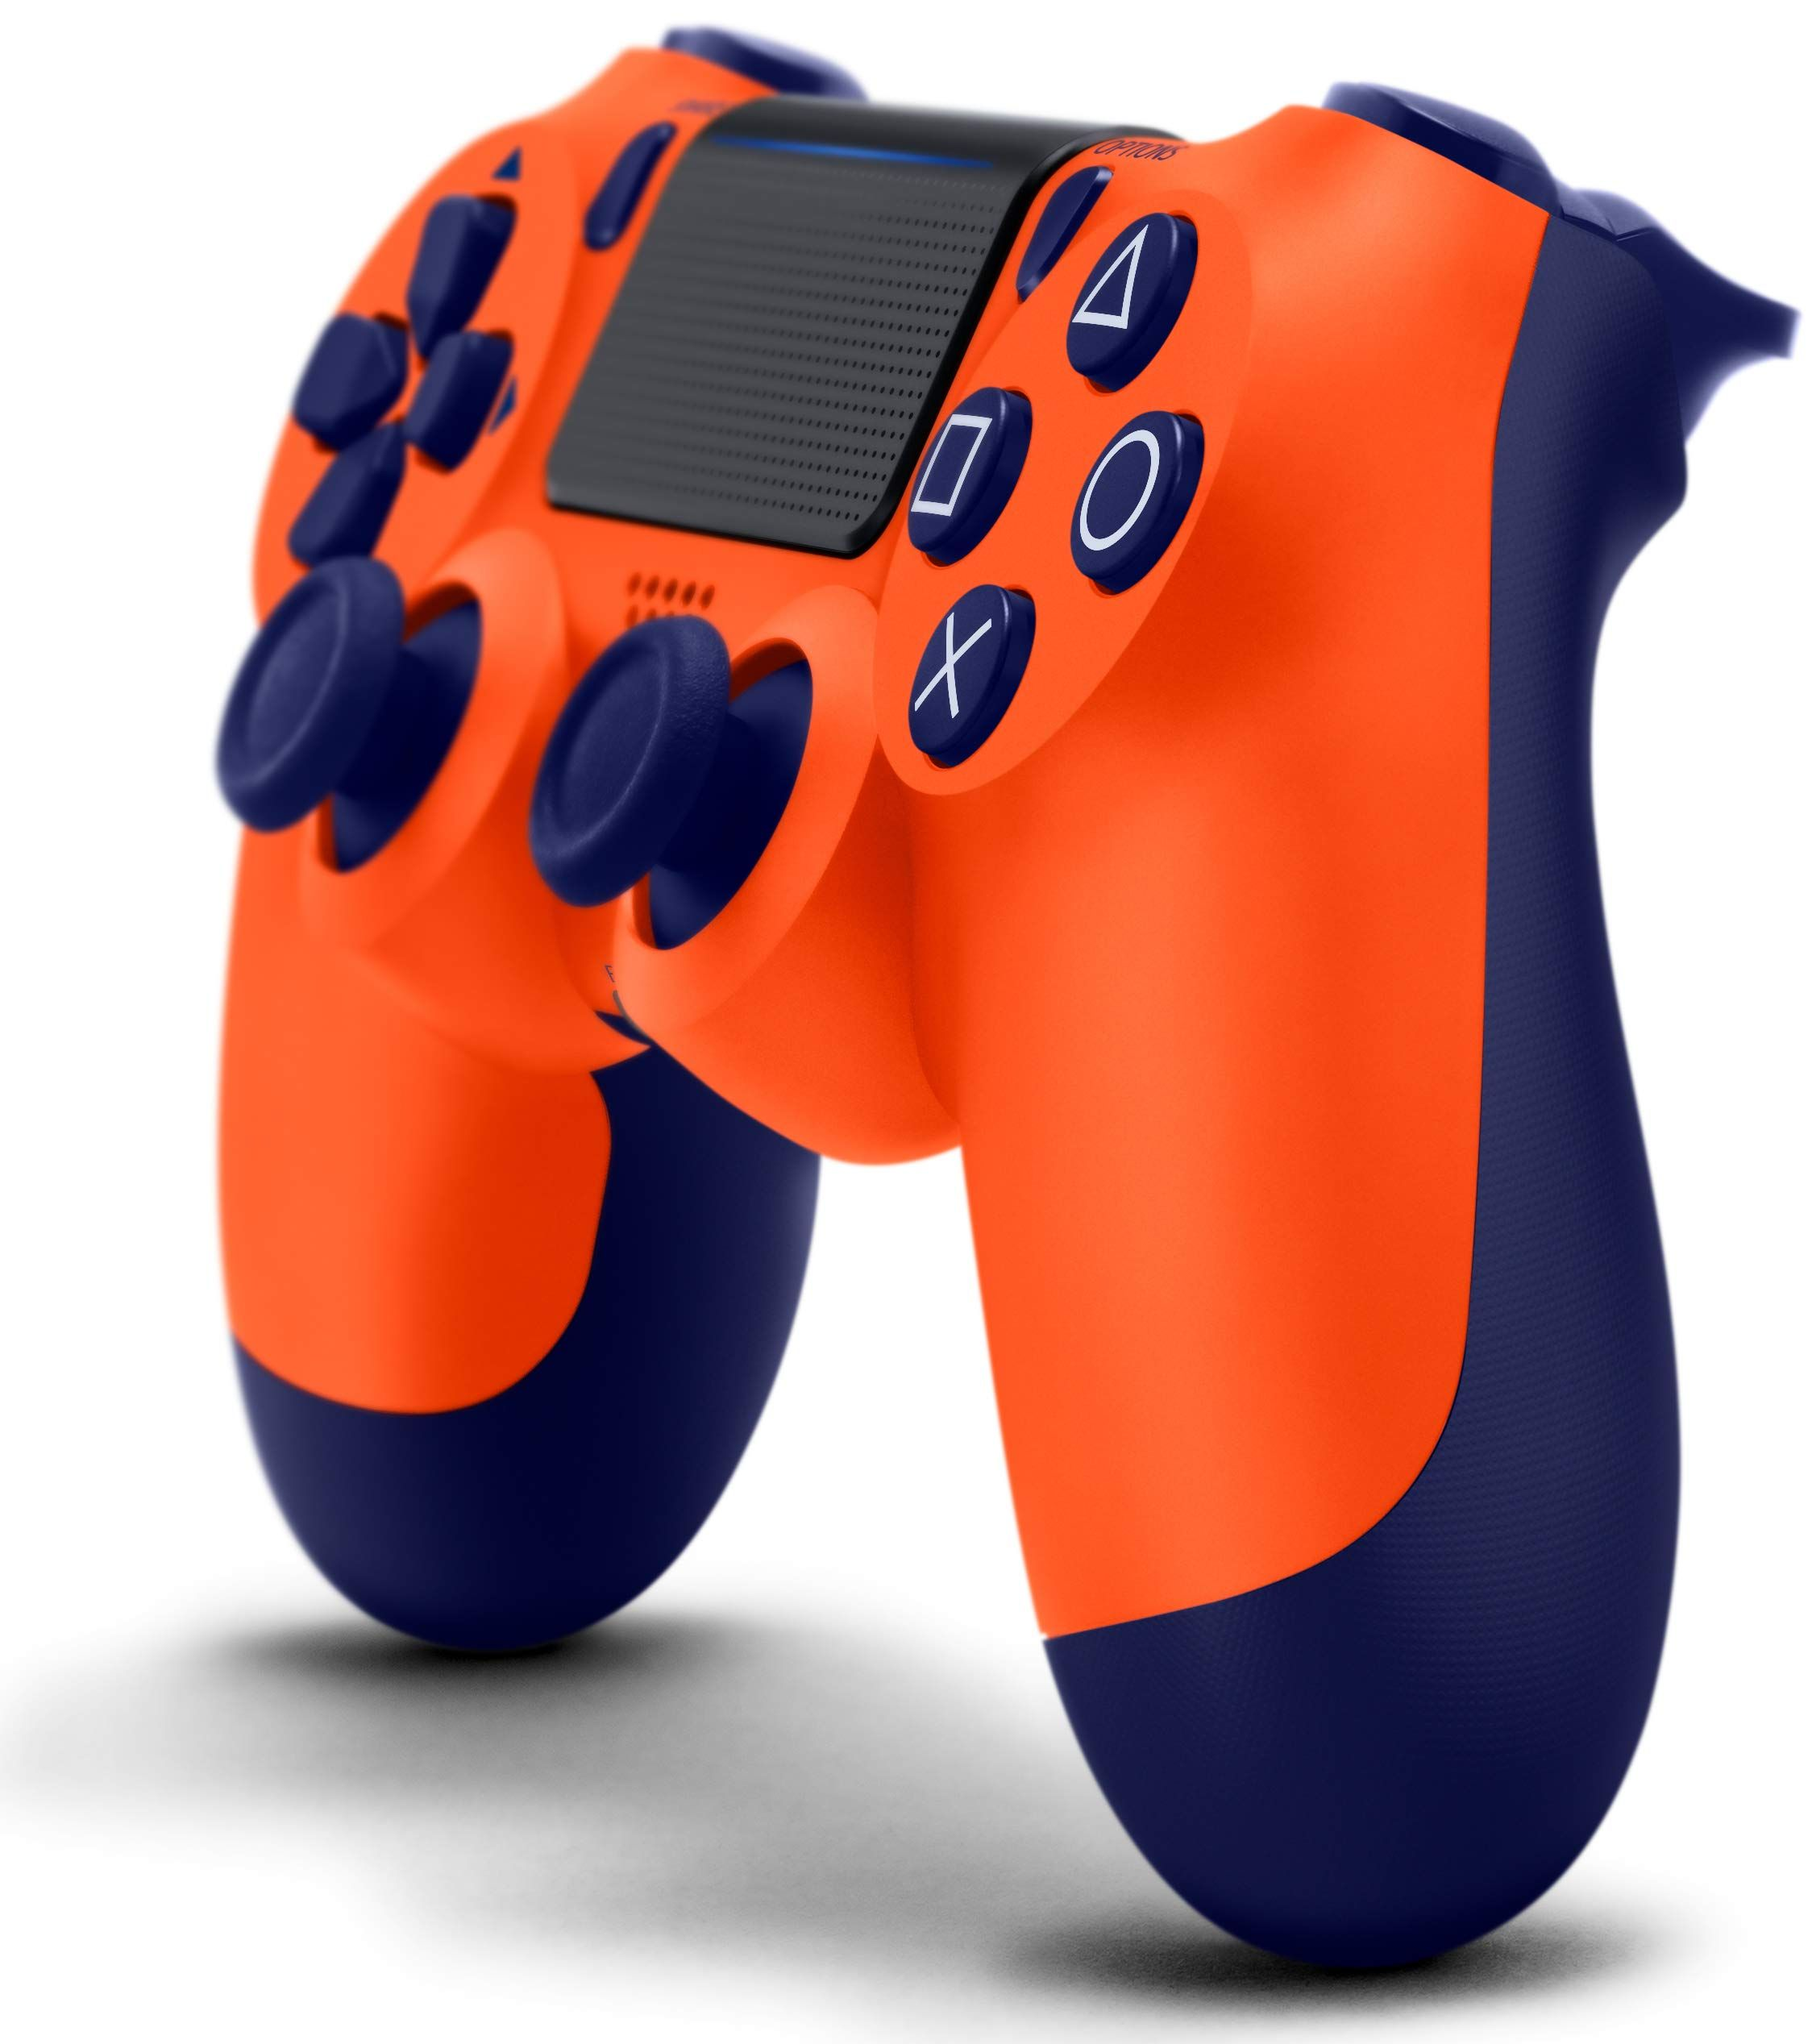 DualShock 4 Wireless Controller for PlayStation 4 Sunset